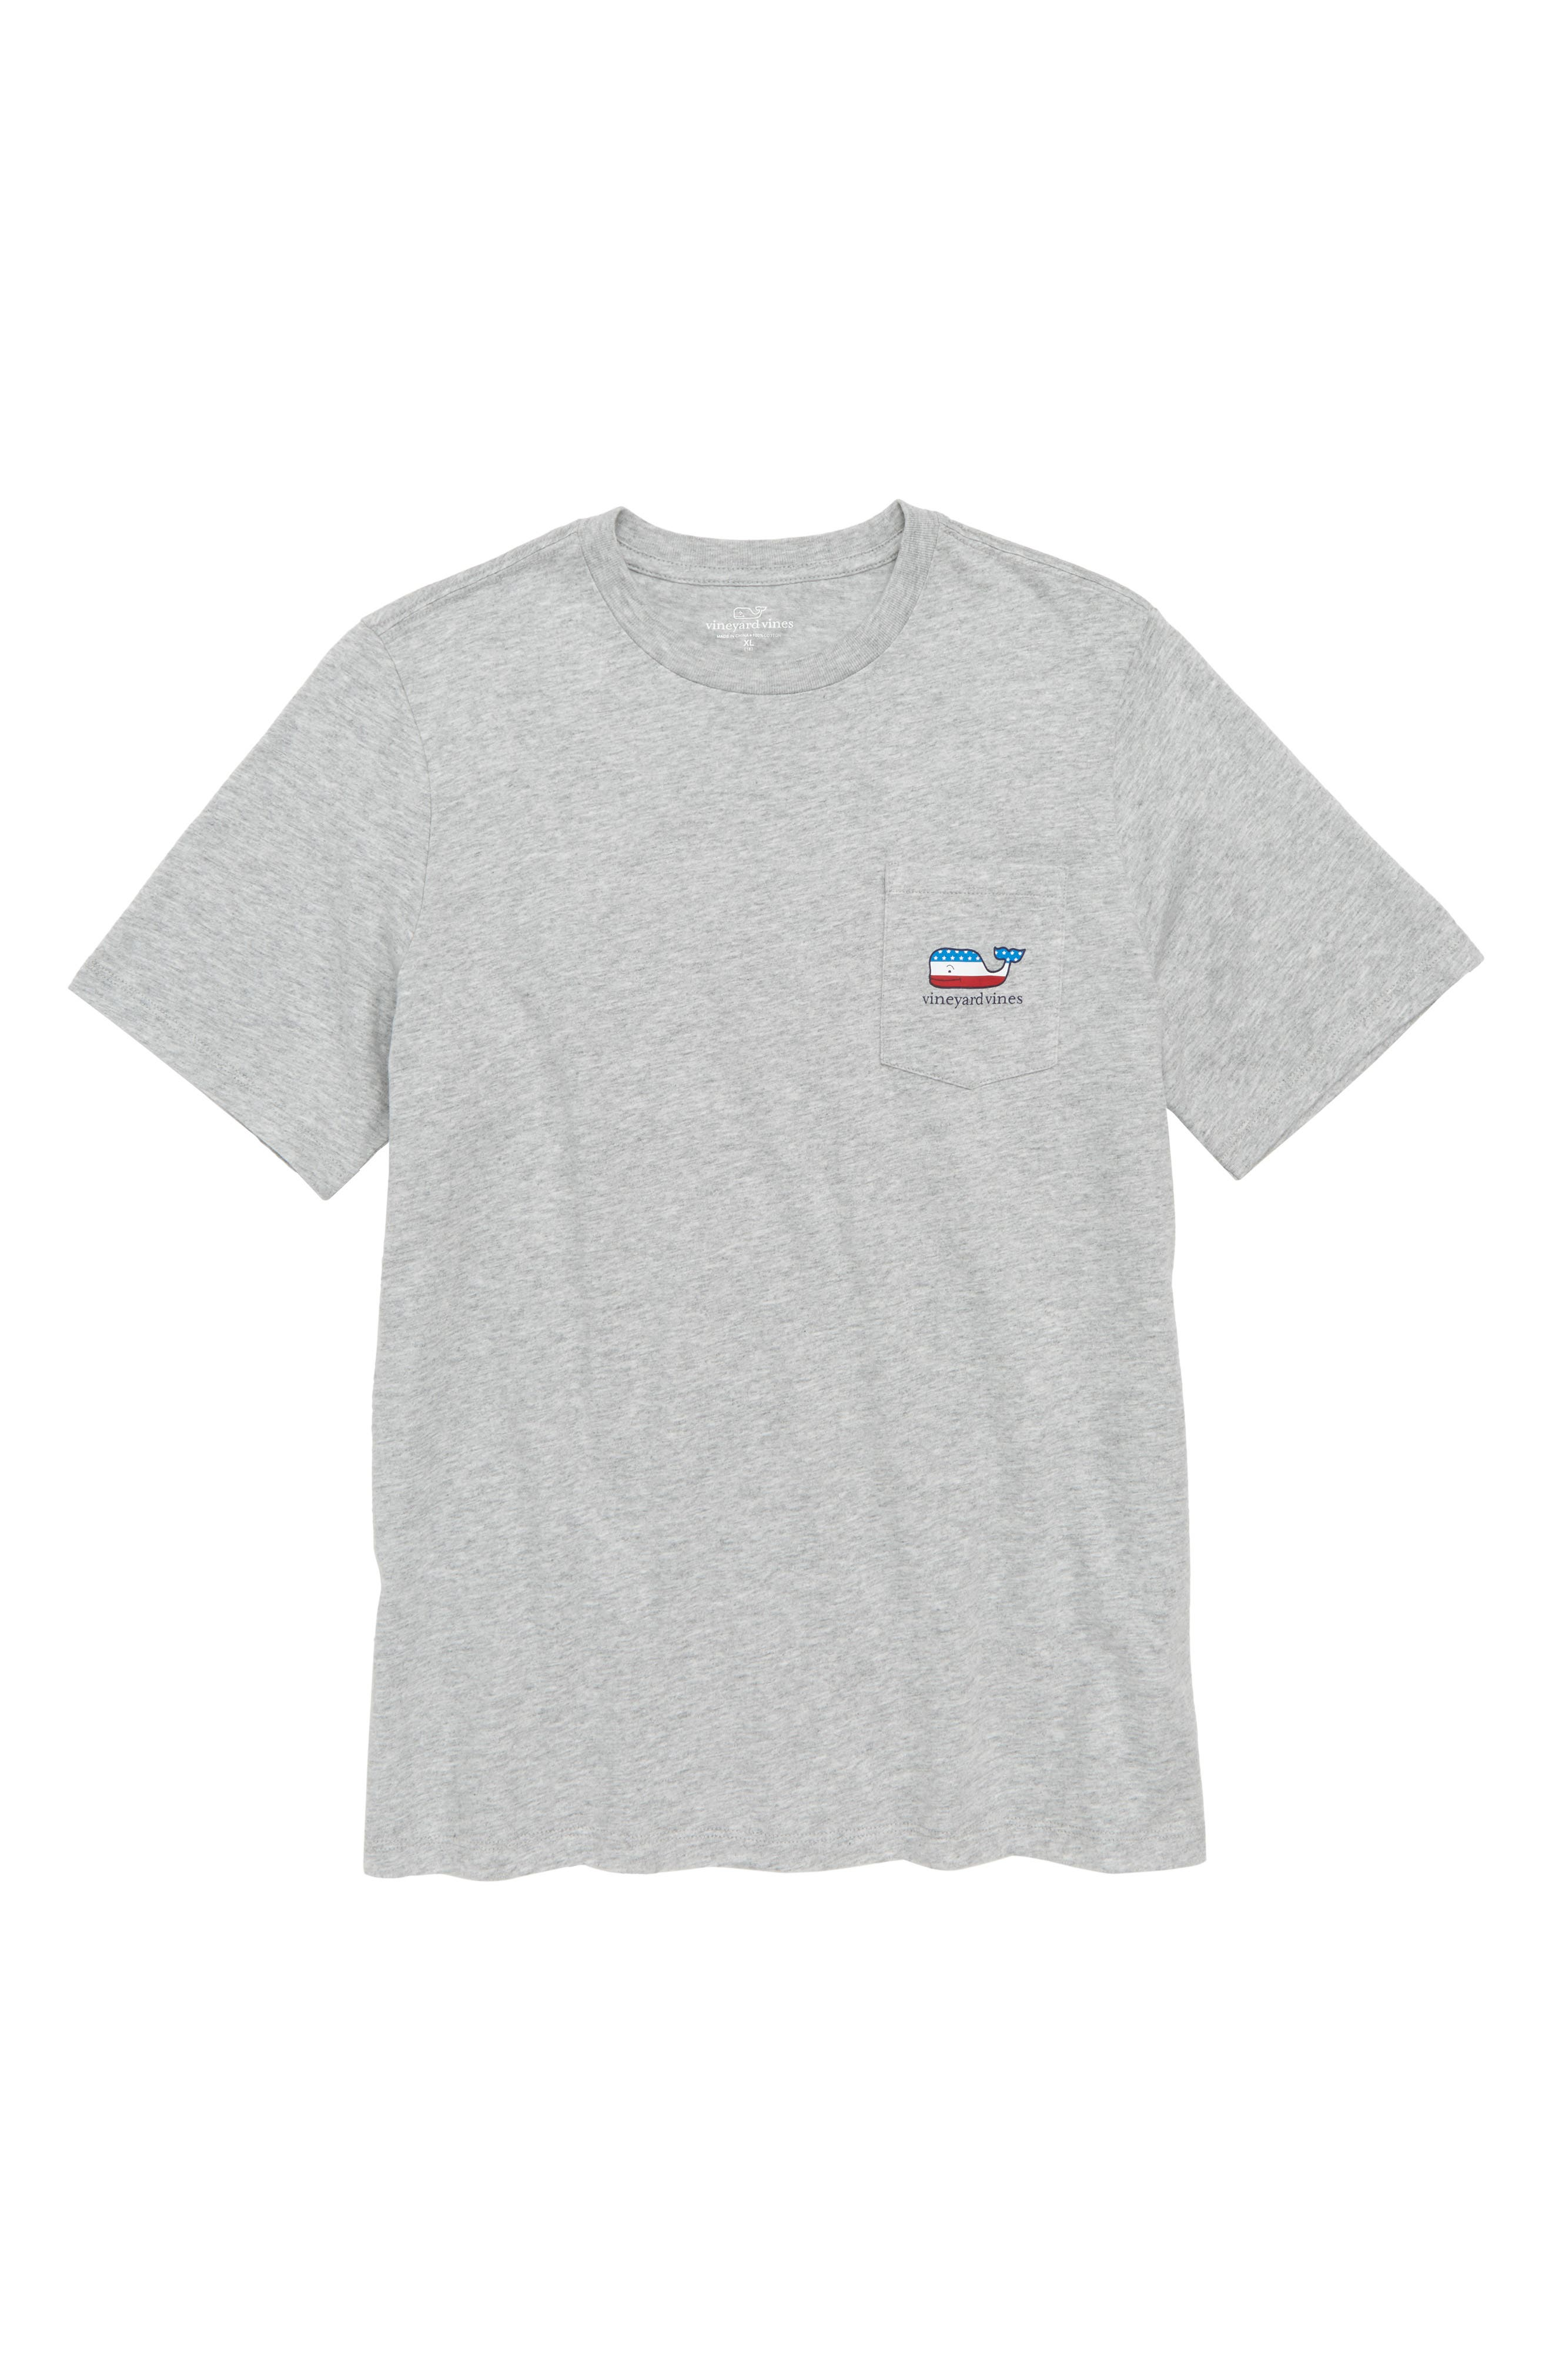 vineyard vines USA Whale Pocket T-Shirt (Big Boys)